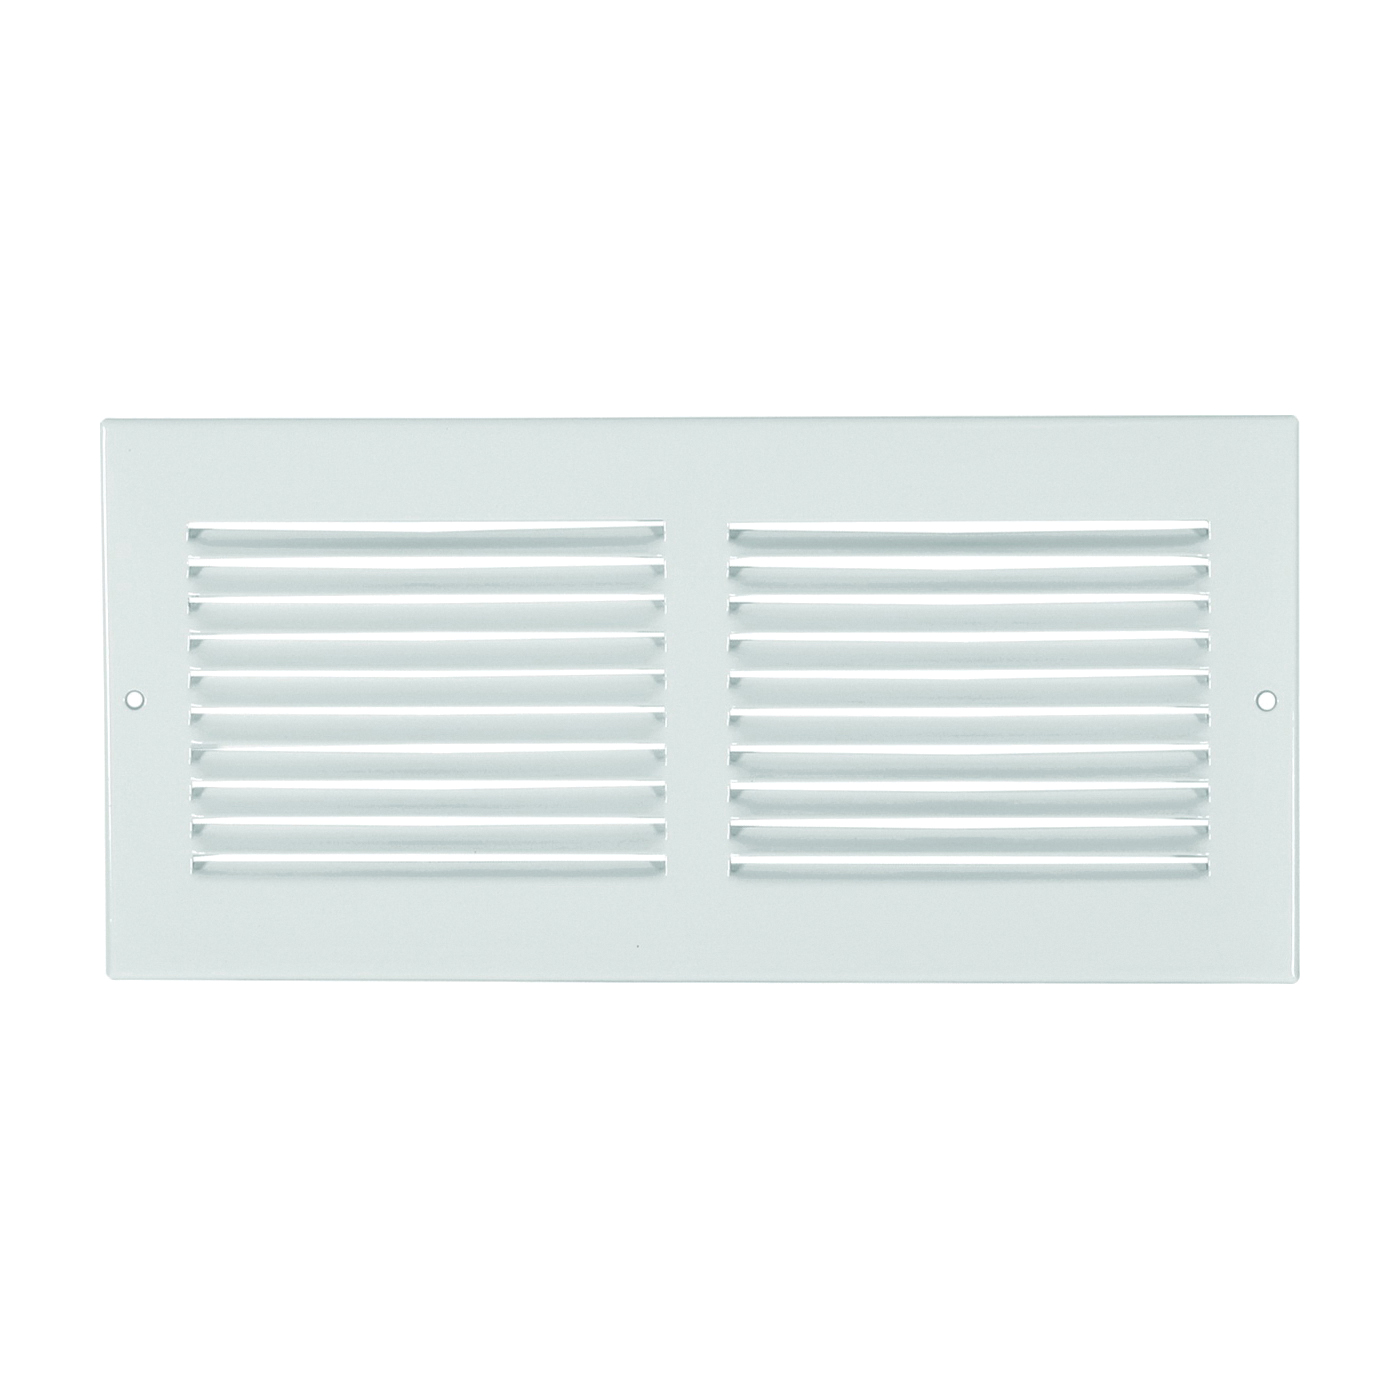 Picture of Imperial RG0375 Sidewall Grille, 13-1/4 in L, 5-1/4 in W, Steel, White